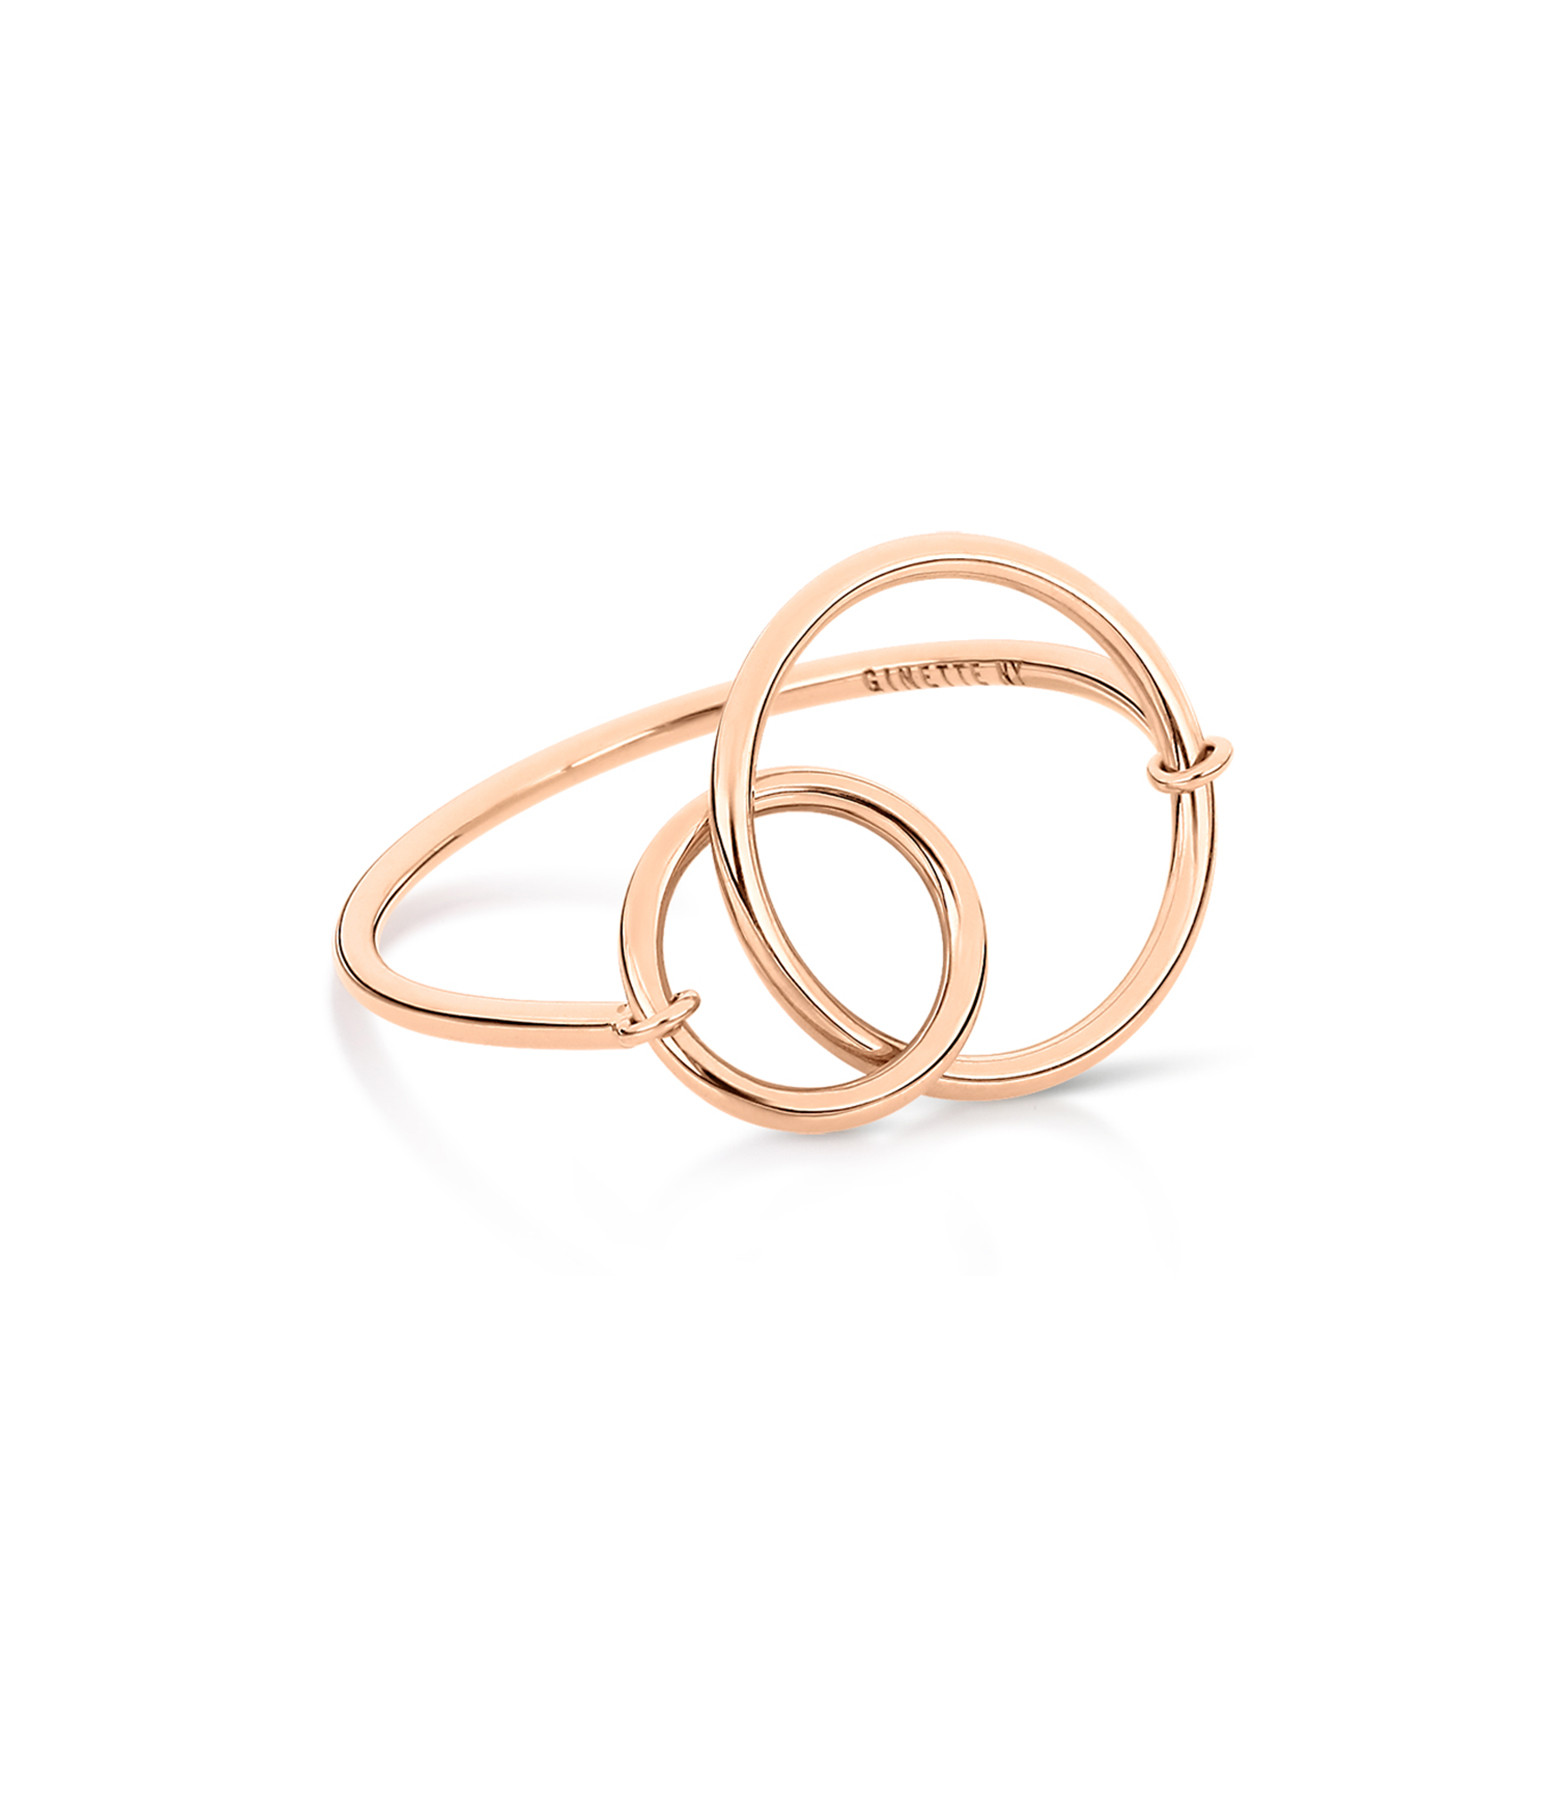 GINETTE NY - Bague Tiny Fusion Or Rose